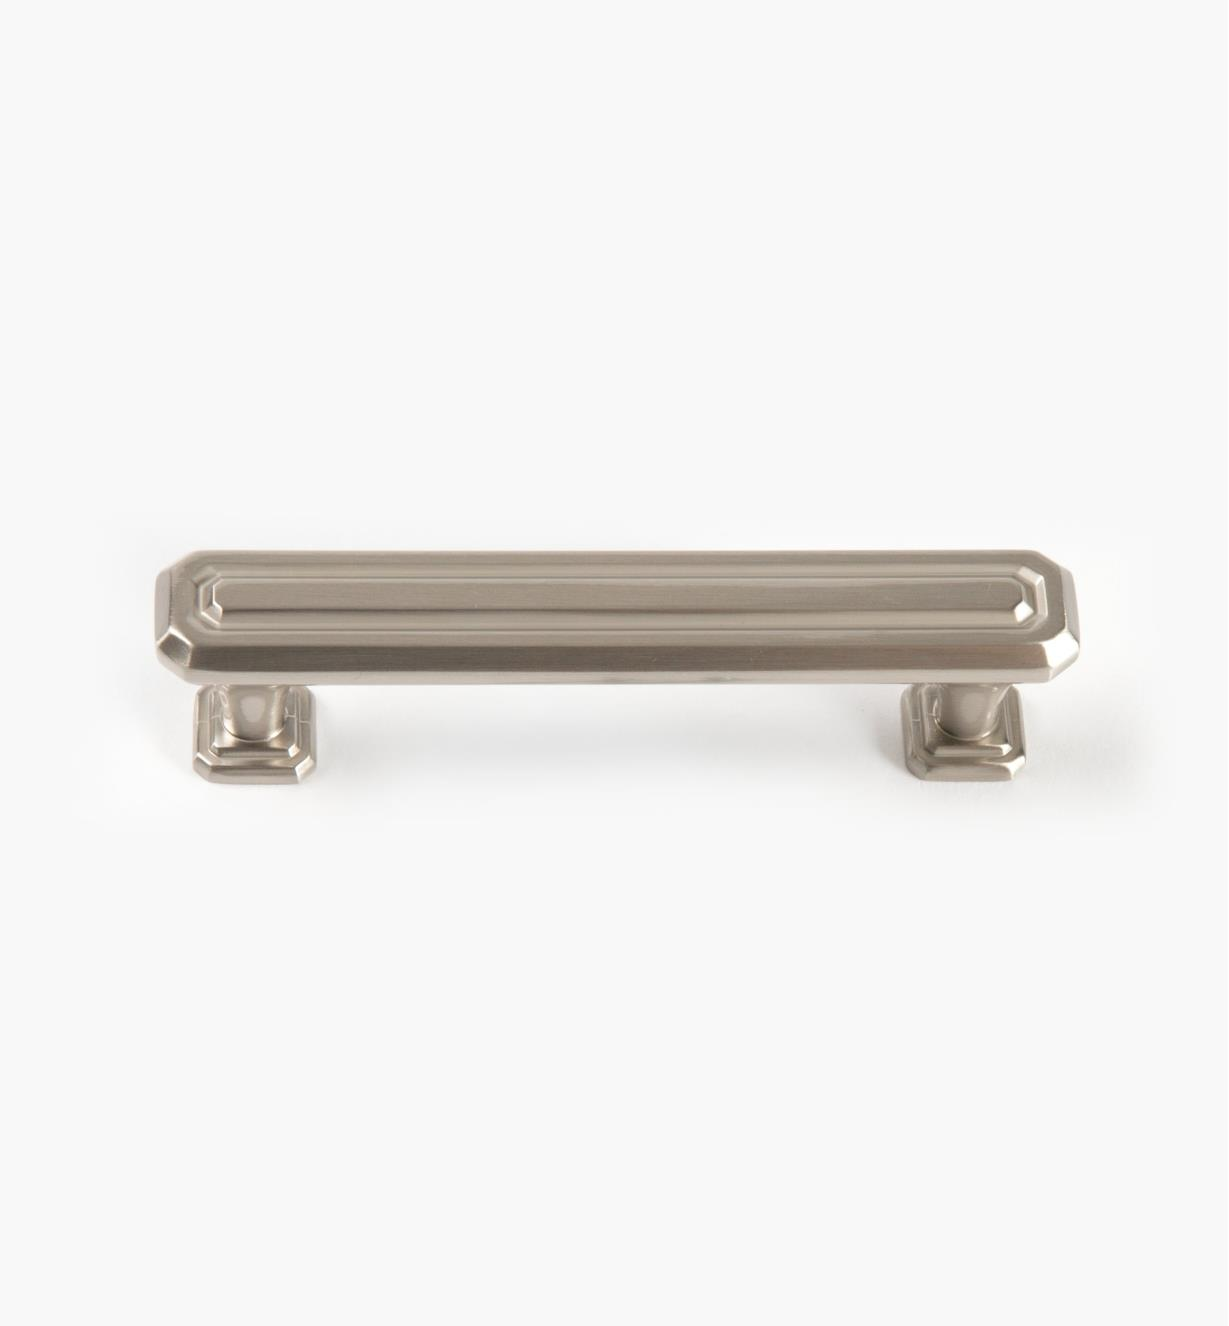 02A1627 - Wells Satin Nickel 96mm x 32mm Handle, each